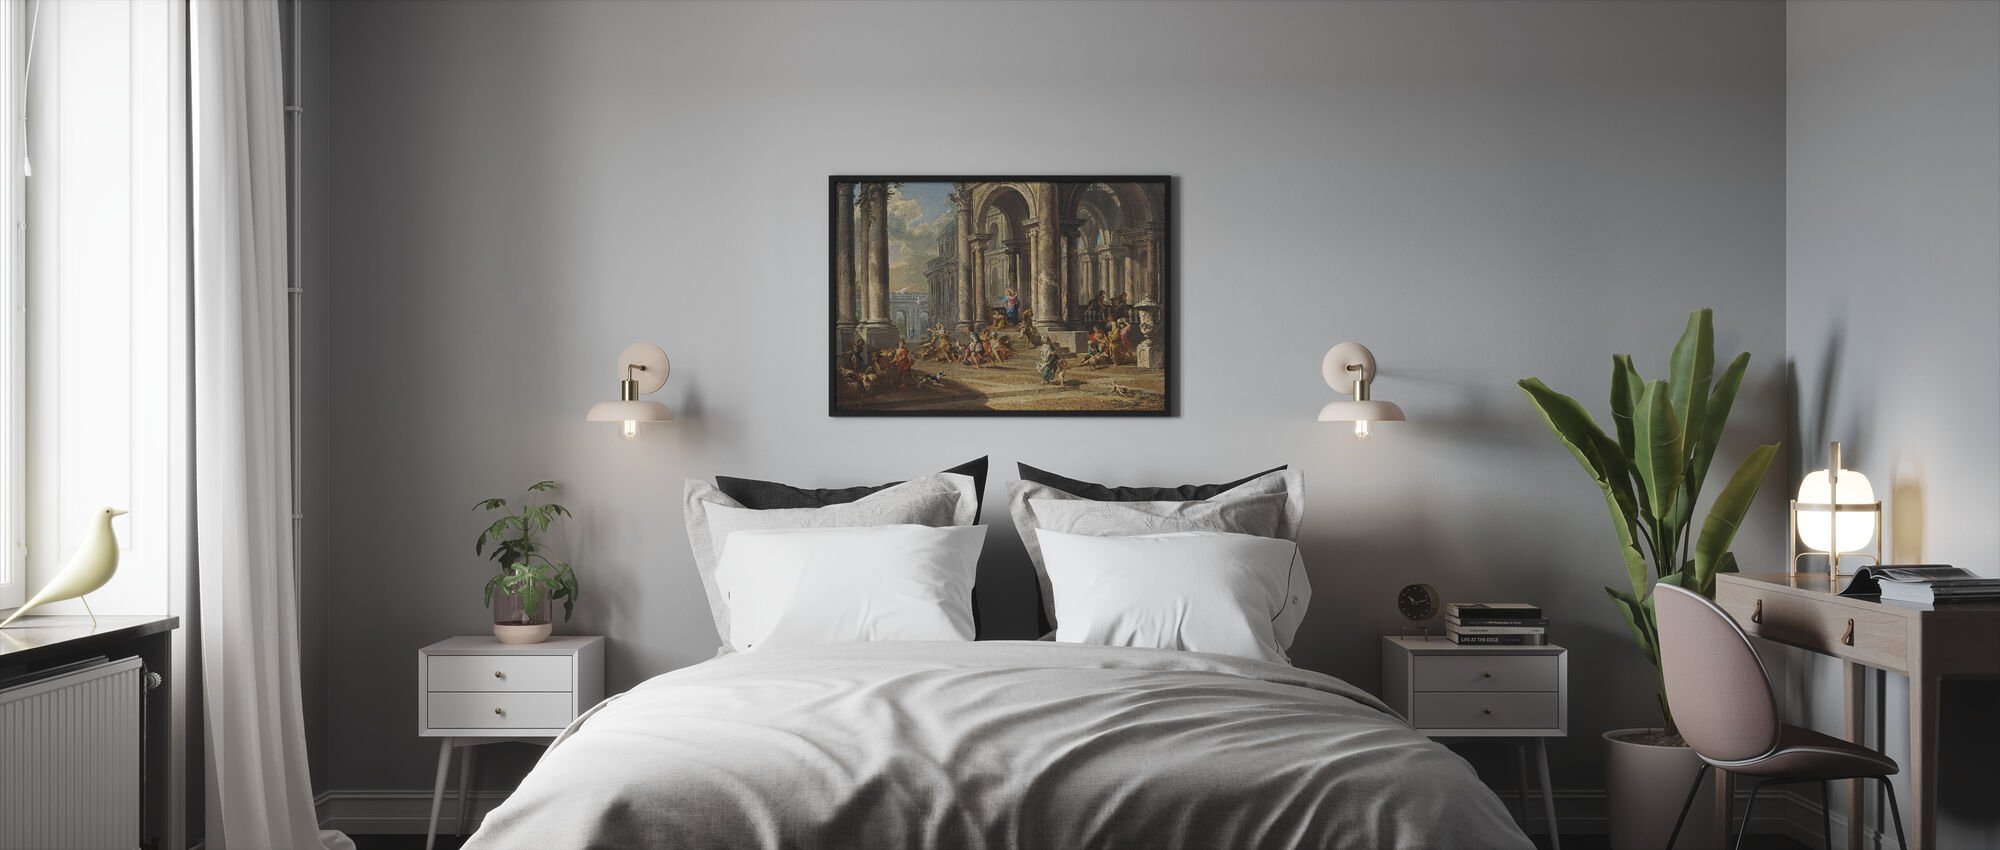 Cleansing of the Temple - Gian Paolo Panini - Framed print - Bedroom